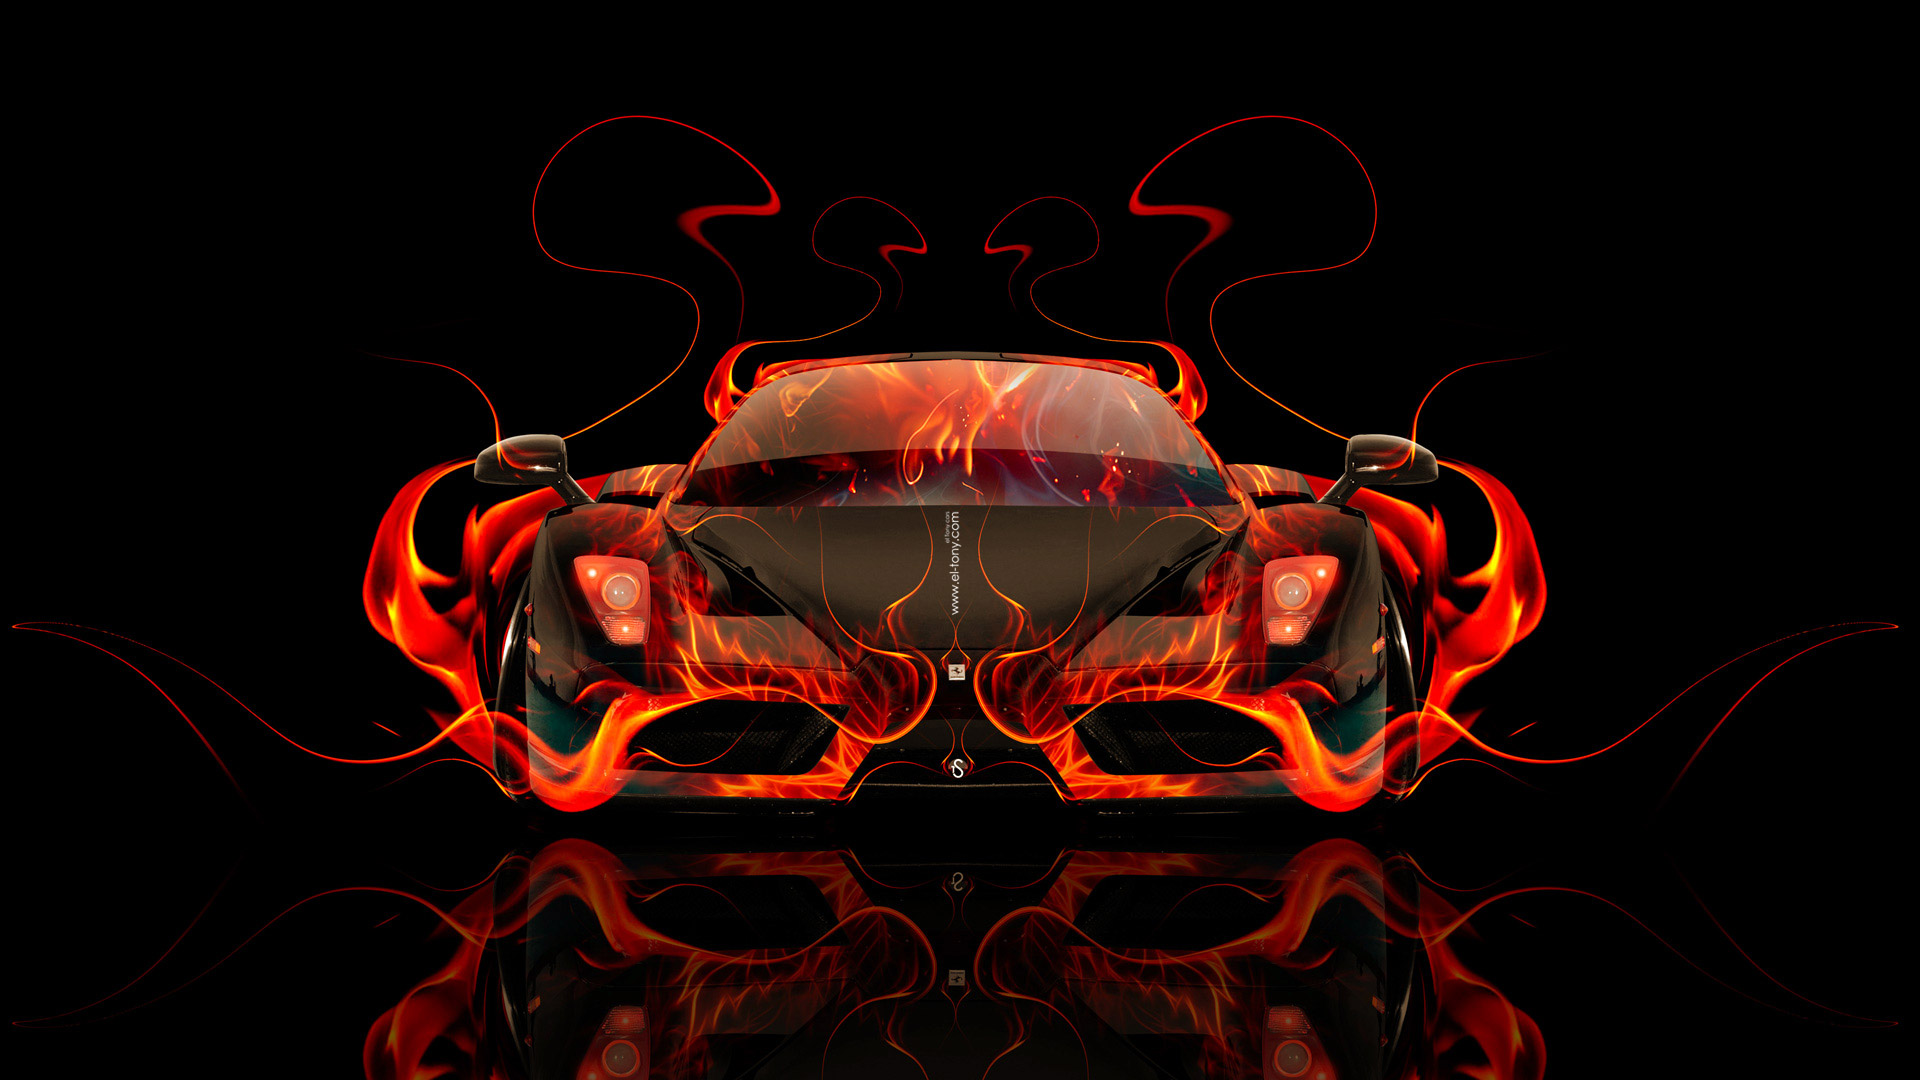 Exceptionnel ... Ferrari Enzo Front Fire Abstract Car 2014